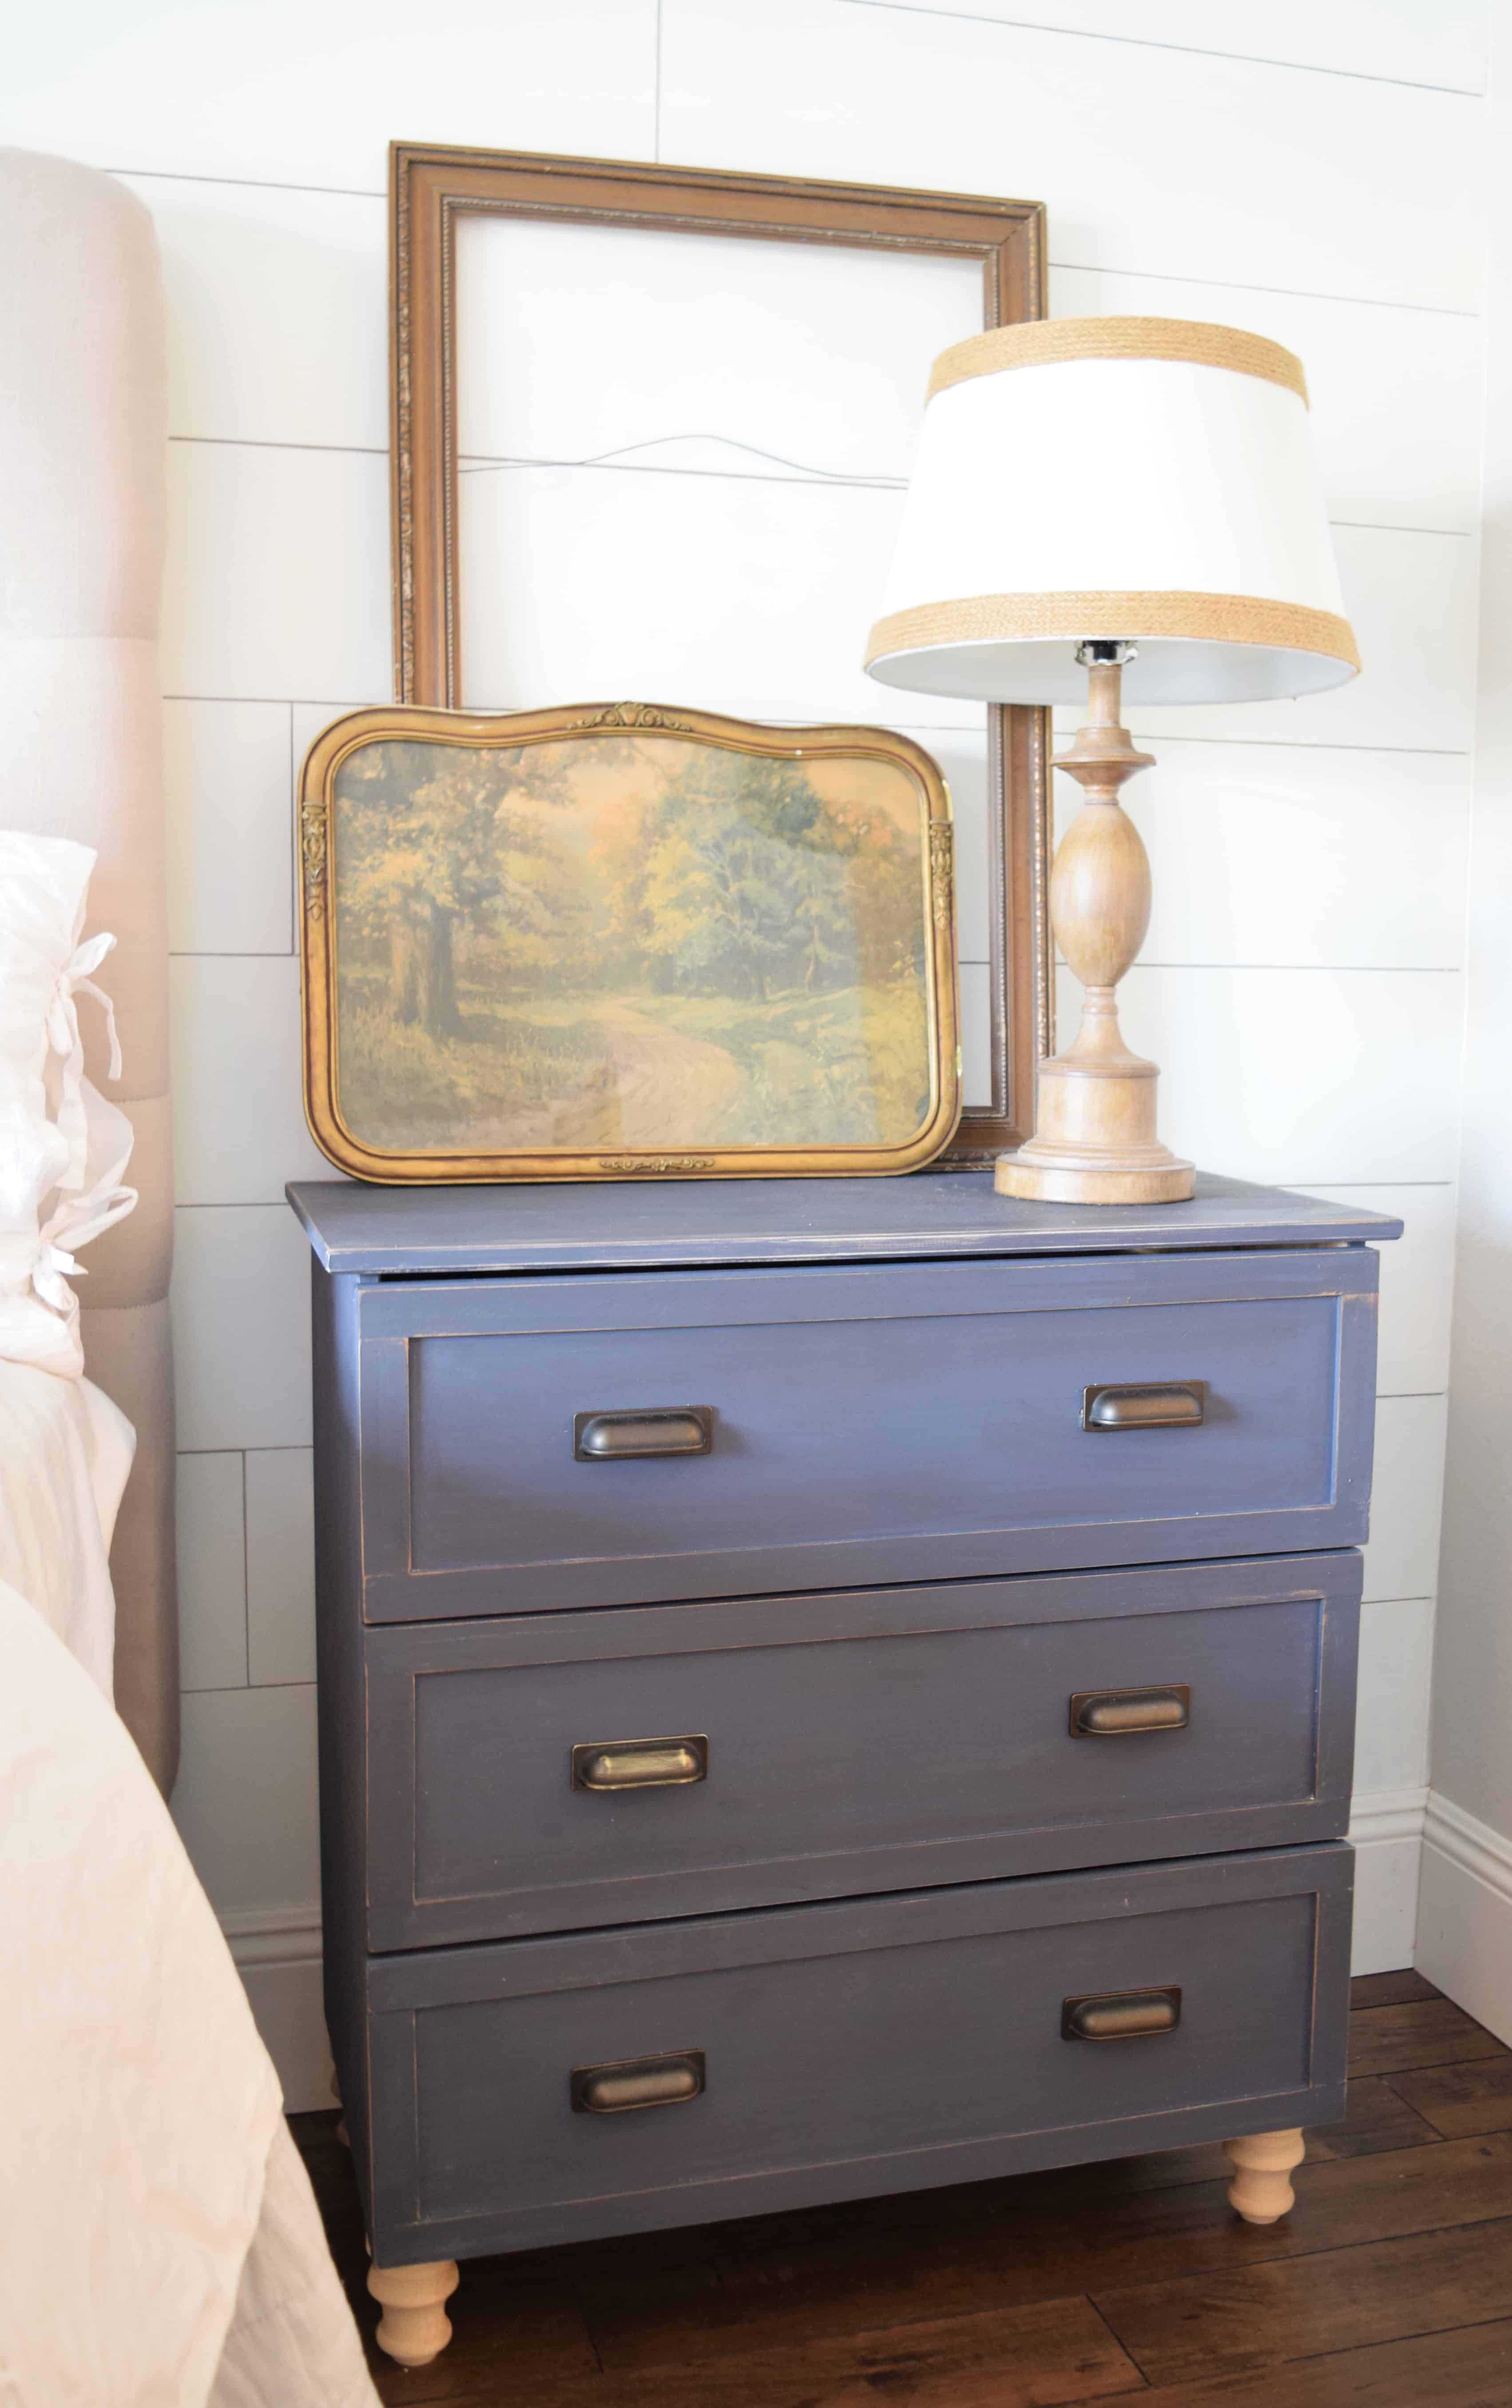 Ikea Tarva Dresser Hack The Collected House